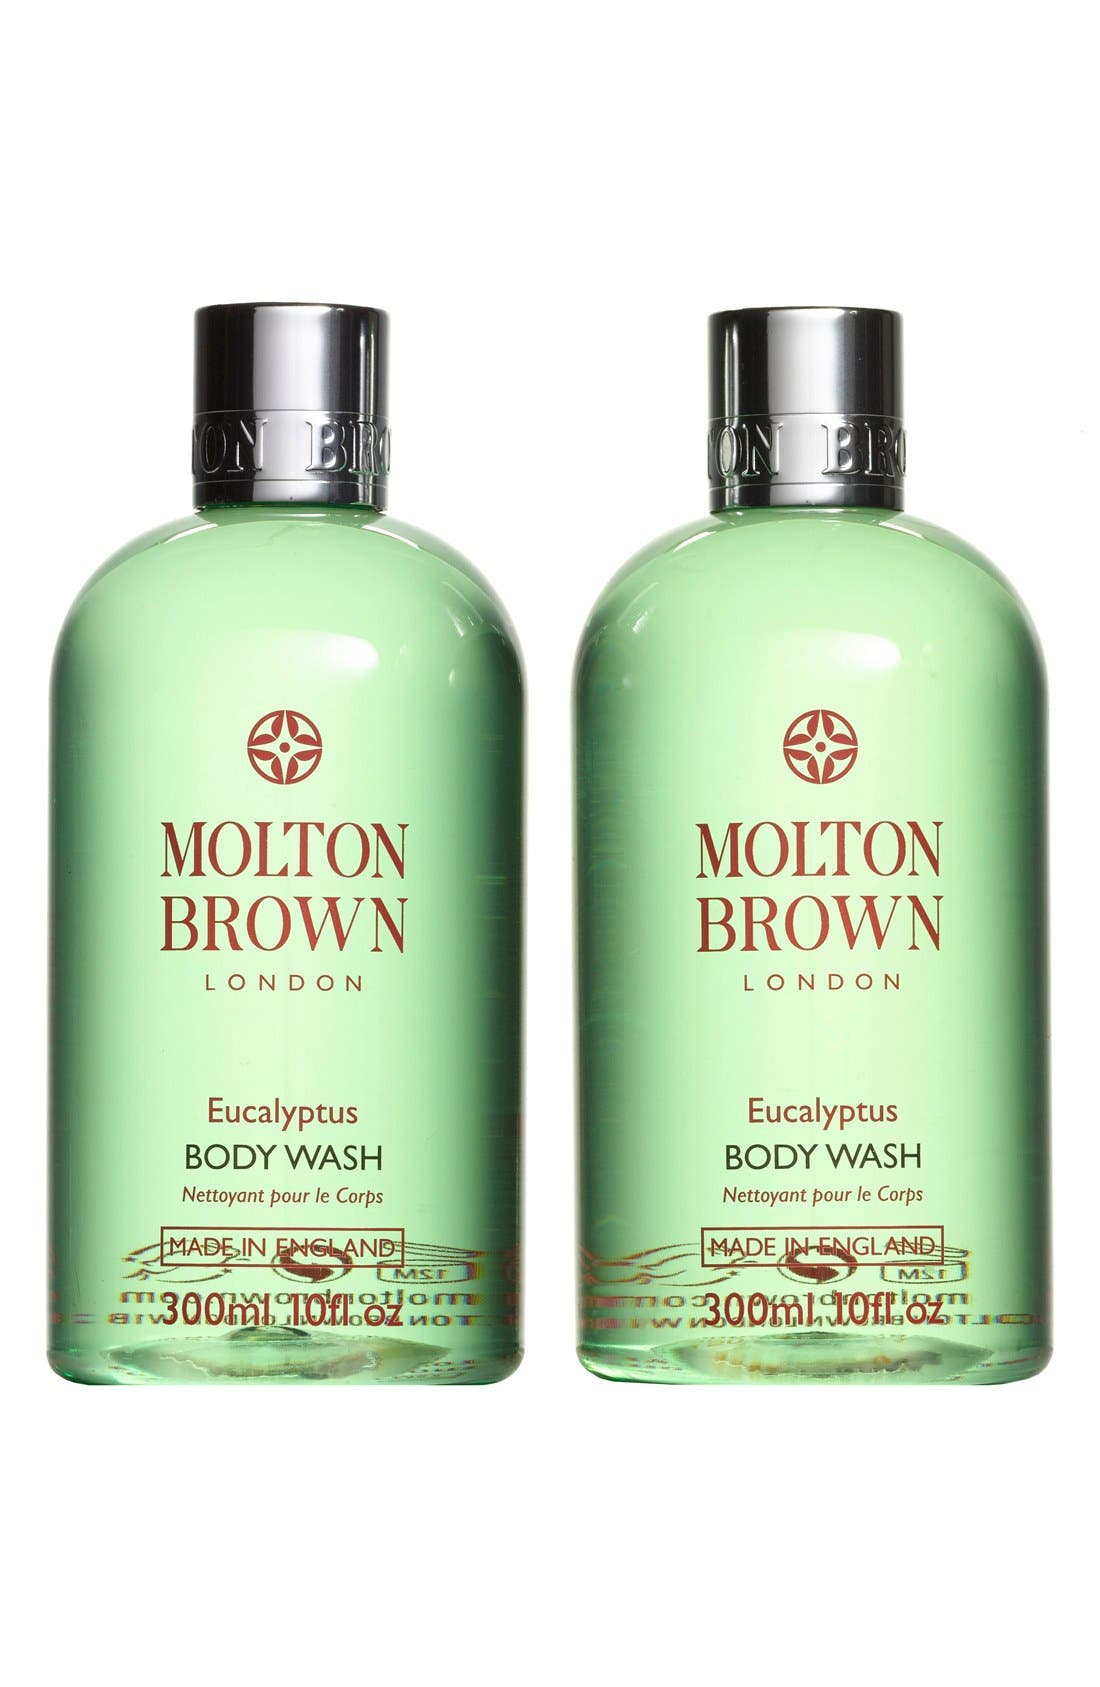 MOLTON BROWN London Body Wash Duo (Nordstrom Exclusive) ($60 Value)